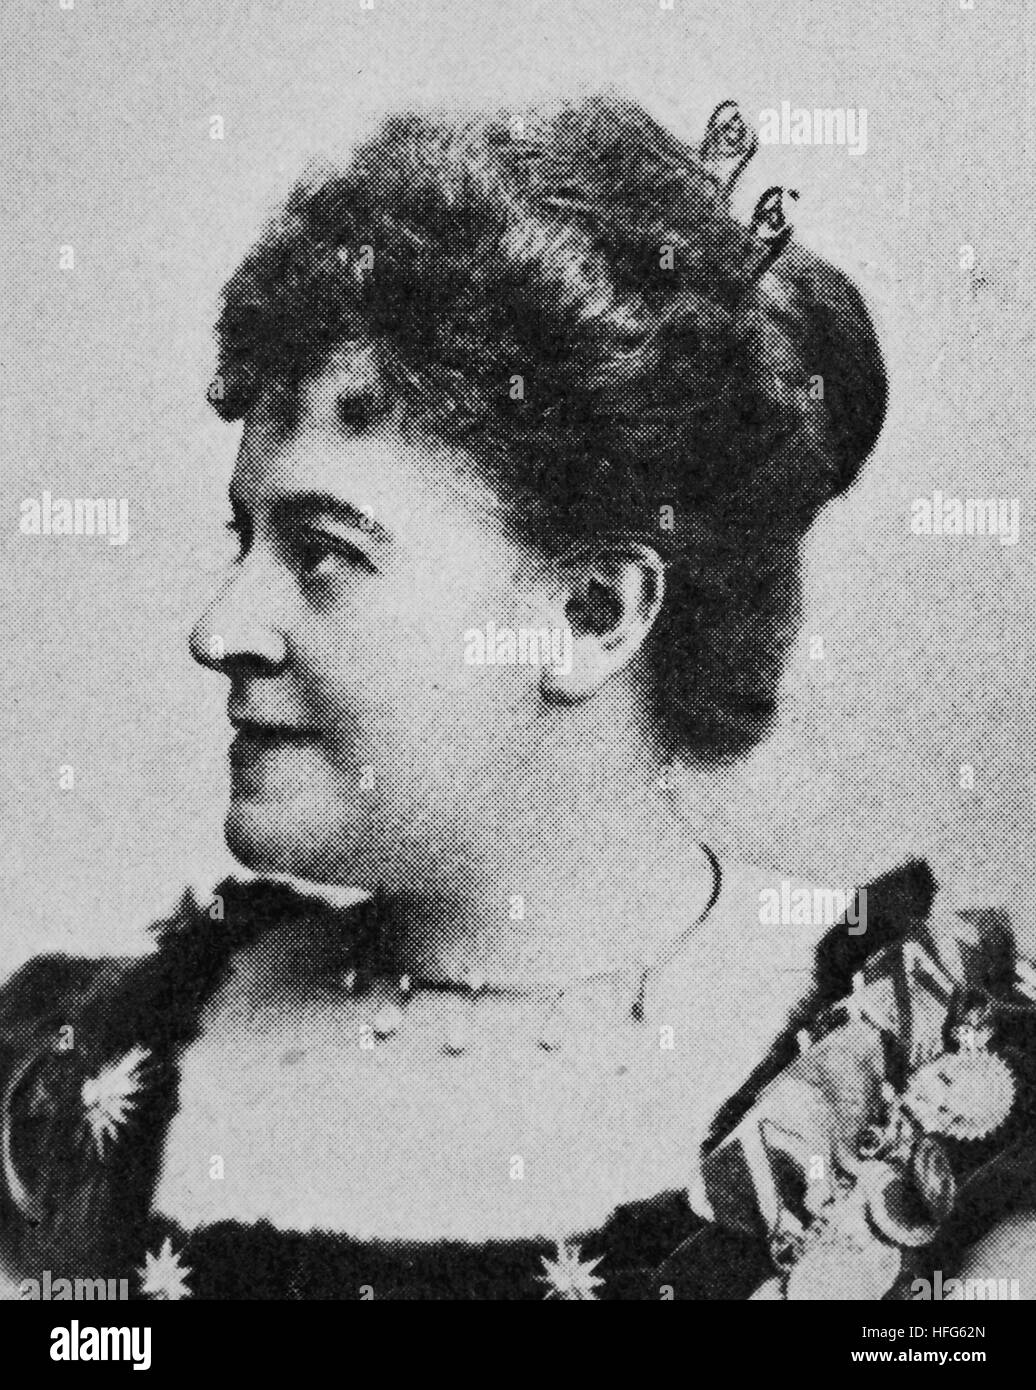 Therese Malten was the stage name of Therese Mueller, 1855 - 1930, a well-known German dramatic soprano, reproduction - Stock Image